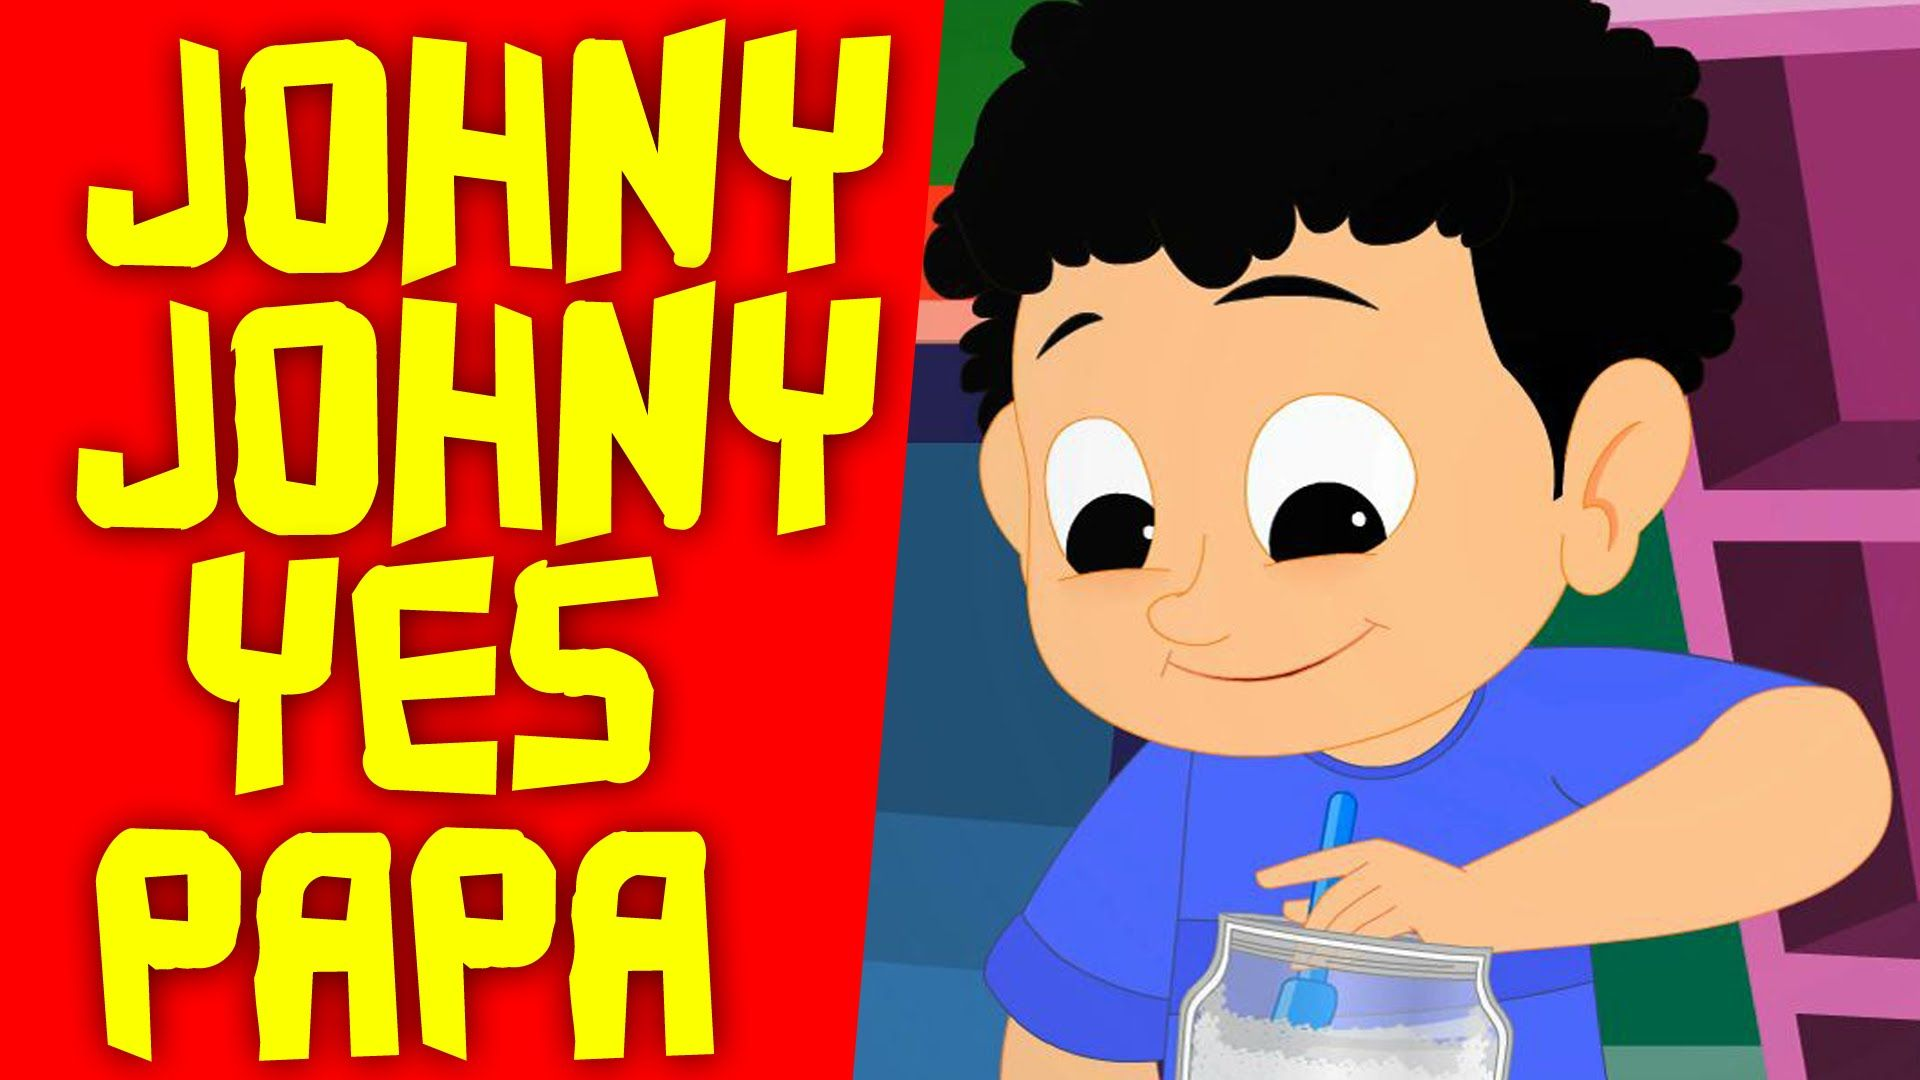 Johny Johny Yes Papa Nursery Rhymes Kids Songs Baby Videos Childrens Rhymes Kids Songs Nursery Rhymes Baby Gif